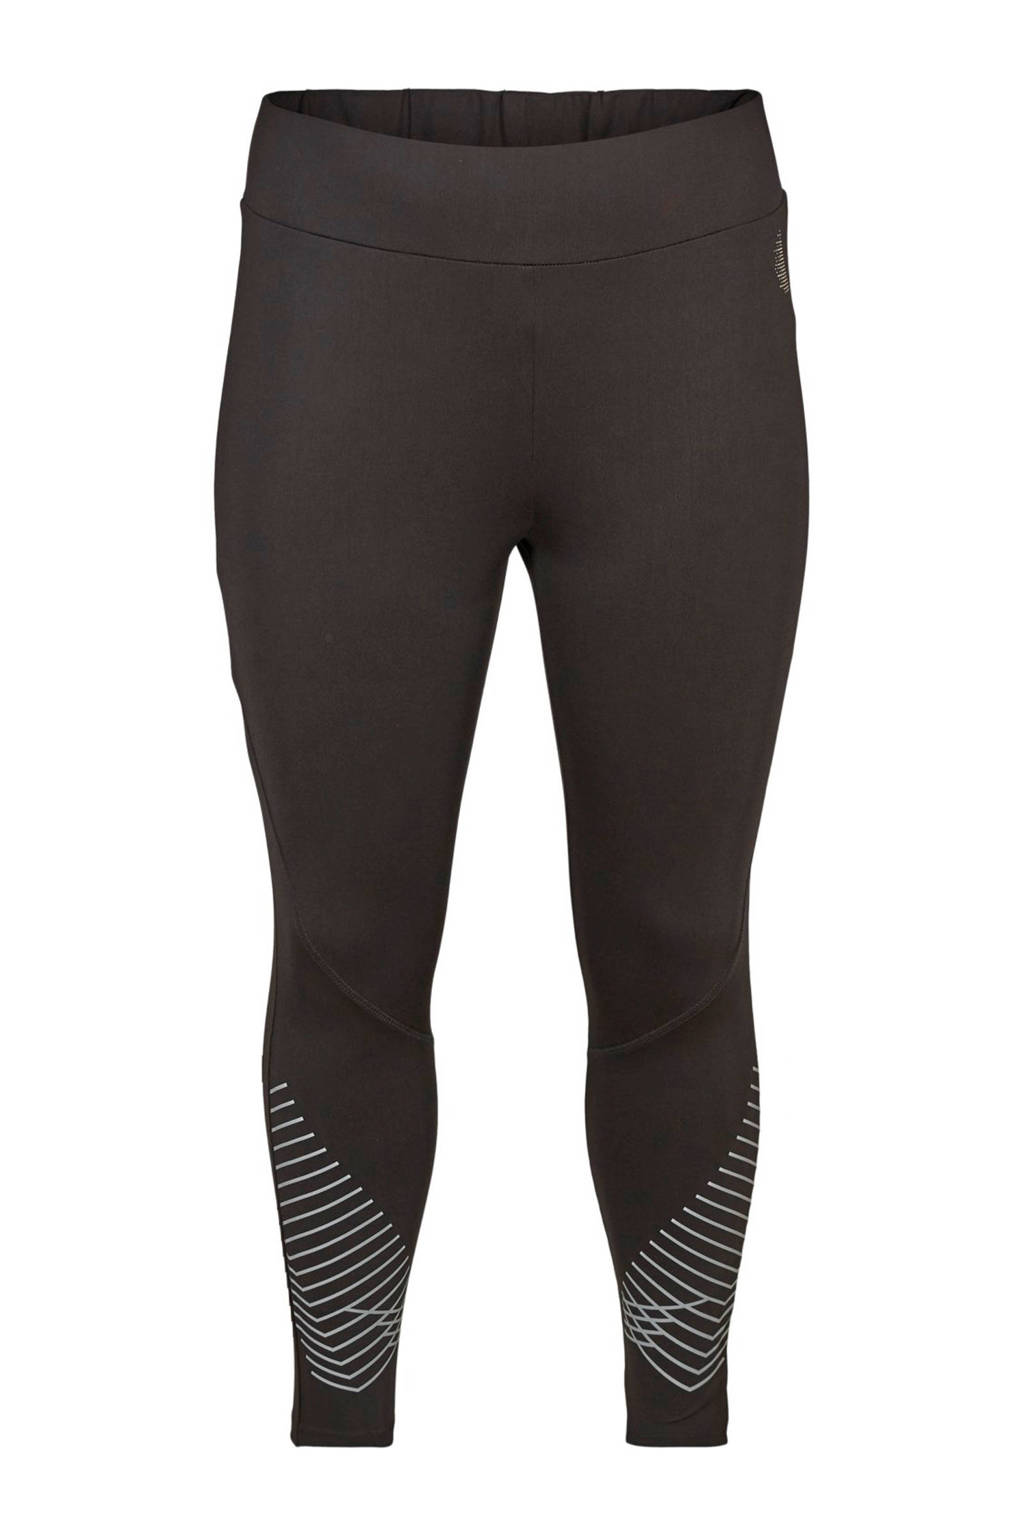 ACTIVE By Zizzi Plus Size sportbroek zwart, Zwart